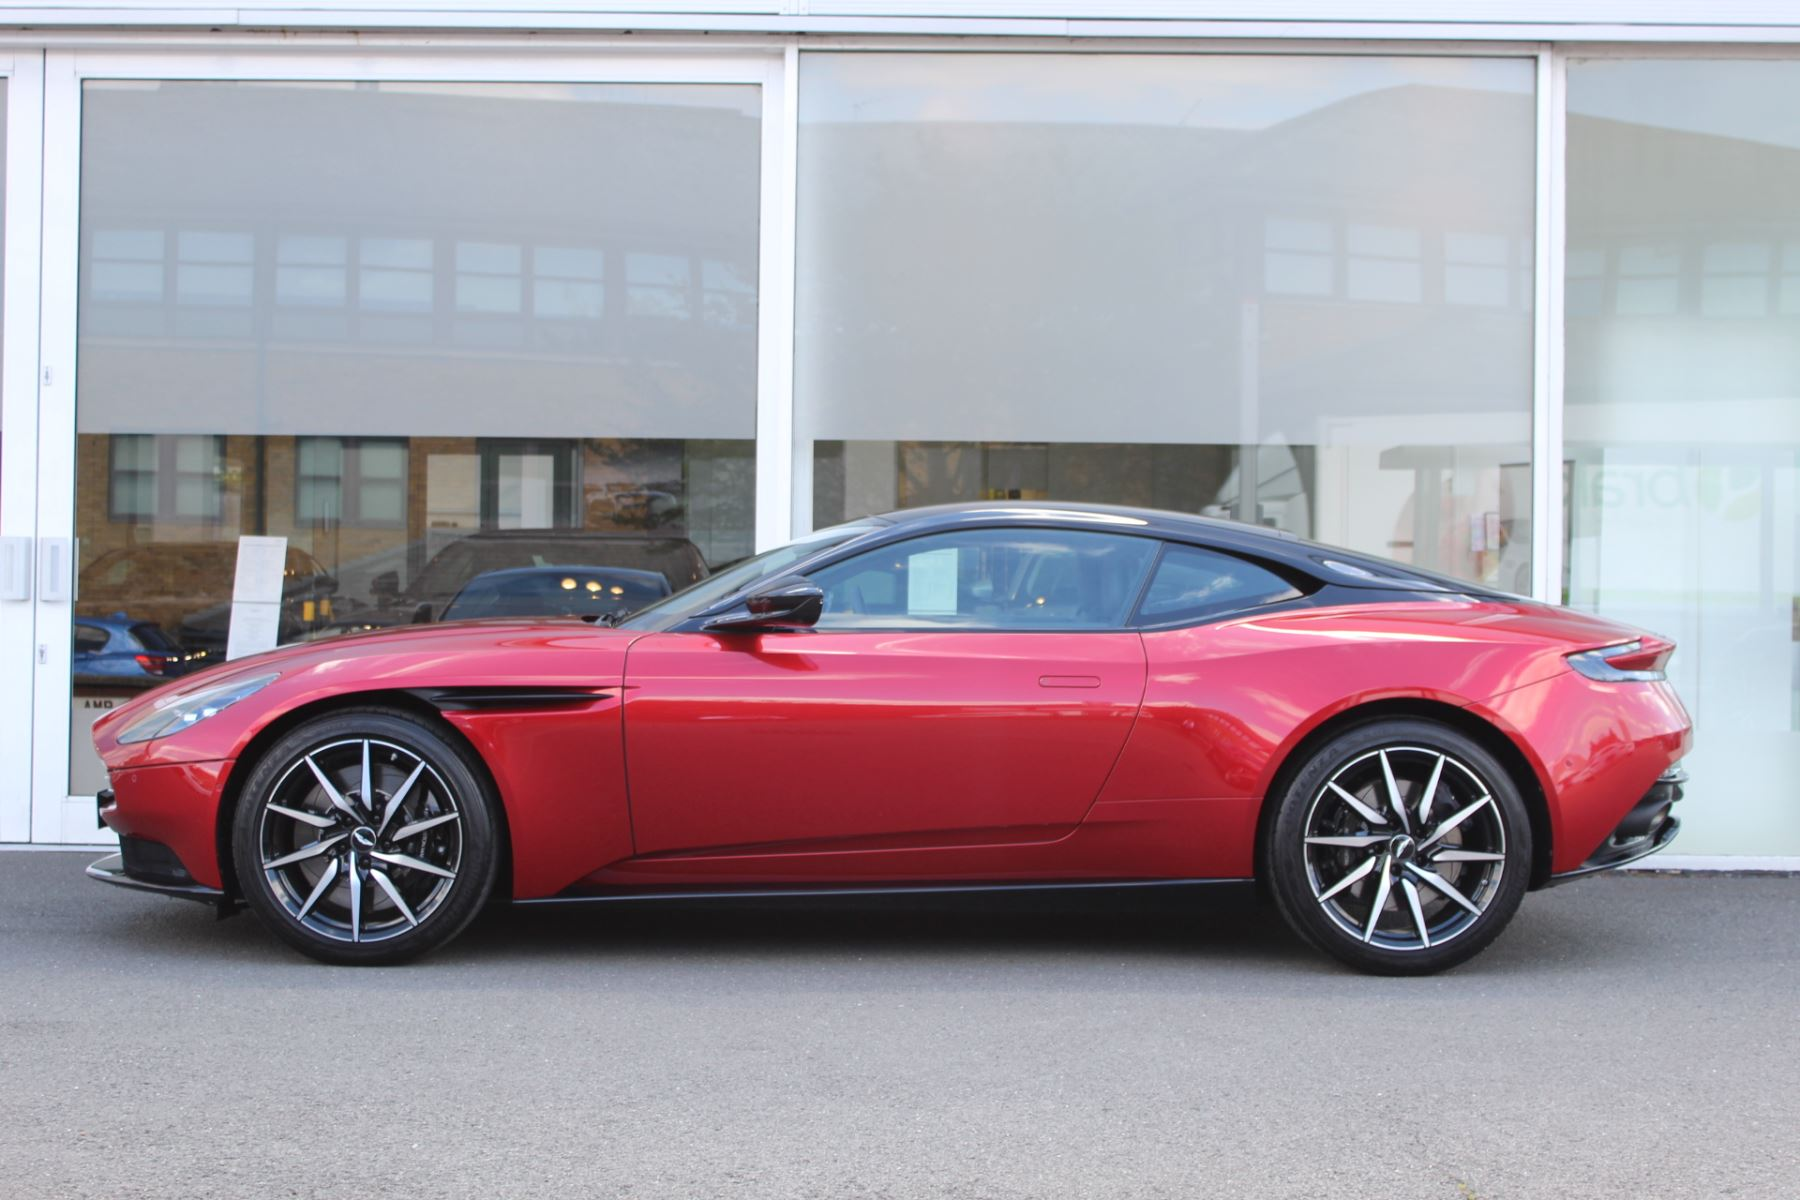 Aston Martin DB11 V8 2dr Touchtronic image 11